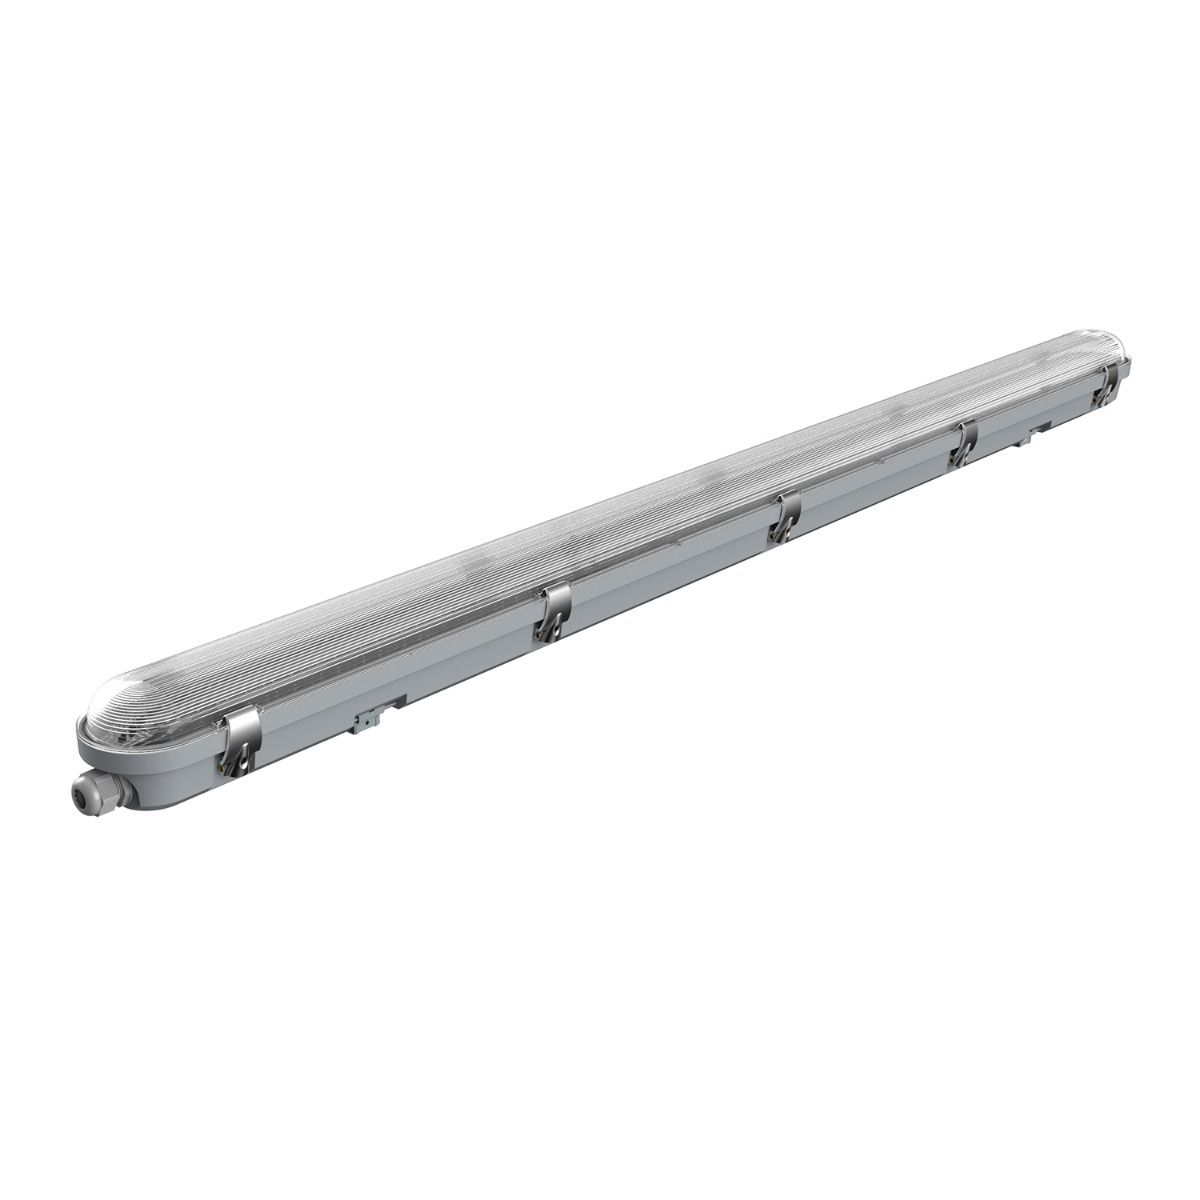 Noxion LED Waterproof Batten Poseidon V2.0 120cm 30W 6500K IP65 Through Wiring | Replacer for 2x36W